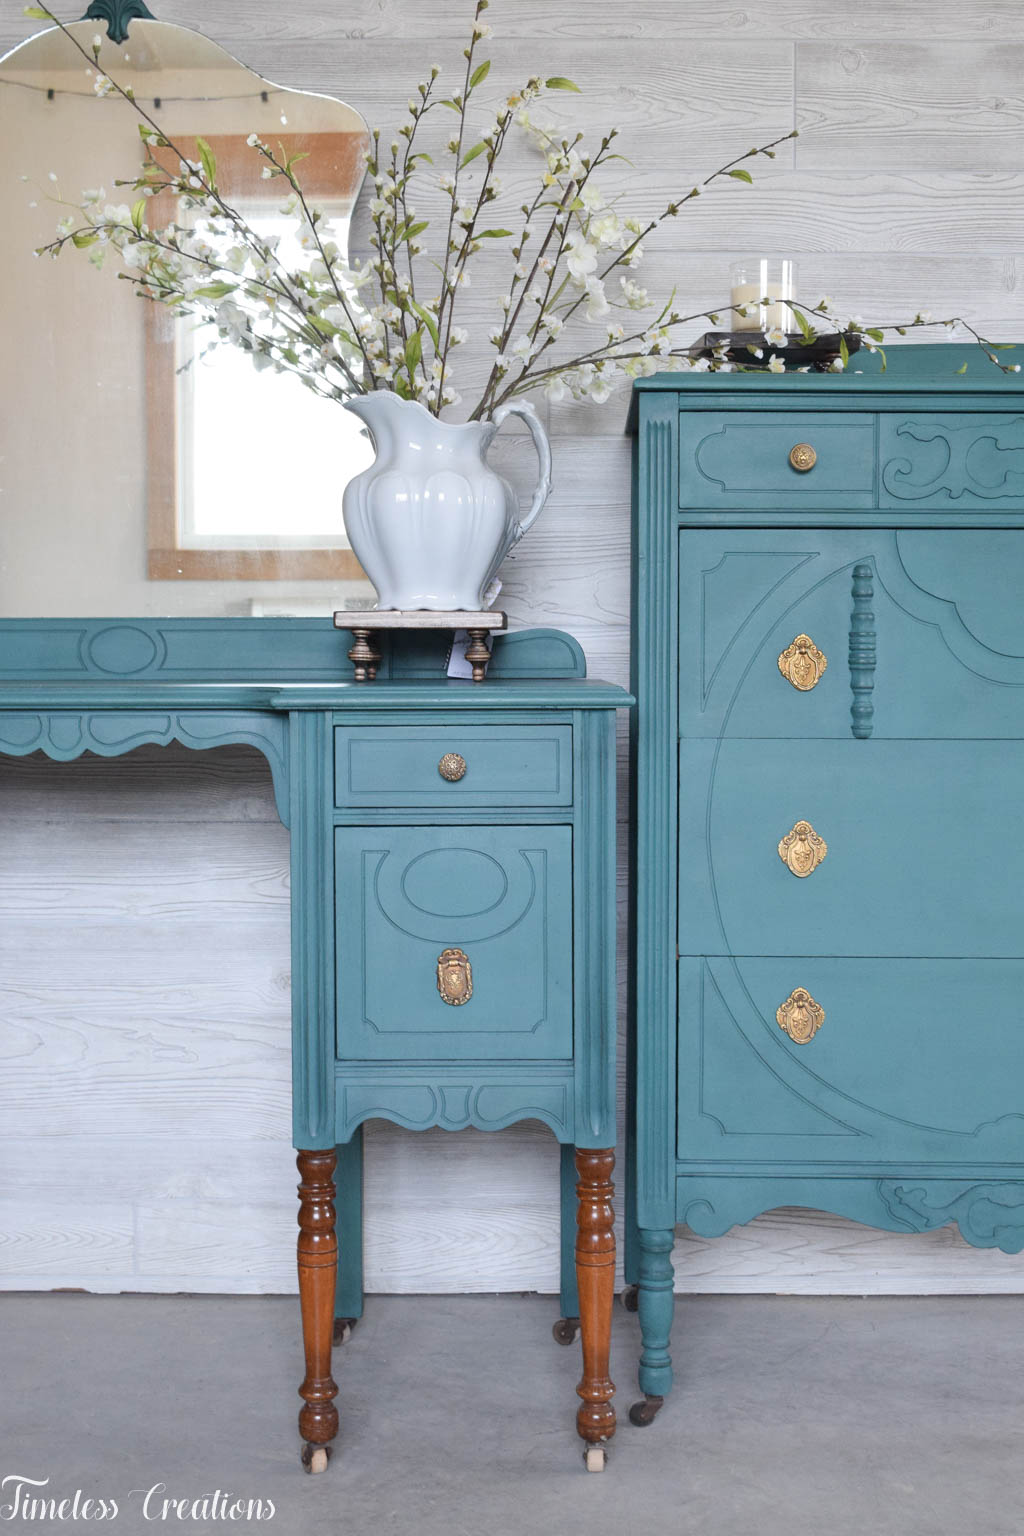 Excellent Antique Dresser Free Shipping Timeless Creations Llc Gamerscity Chair Design For Home Gamerscityorg